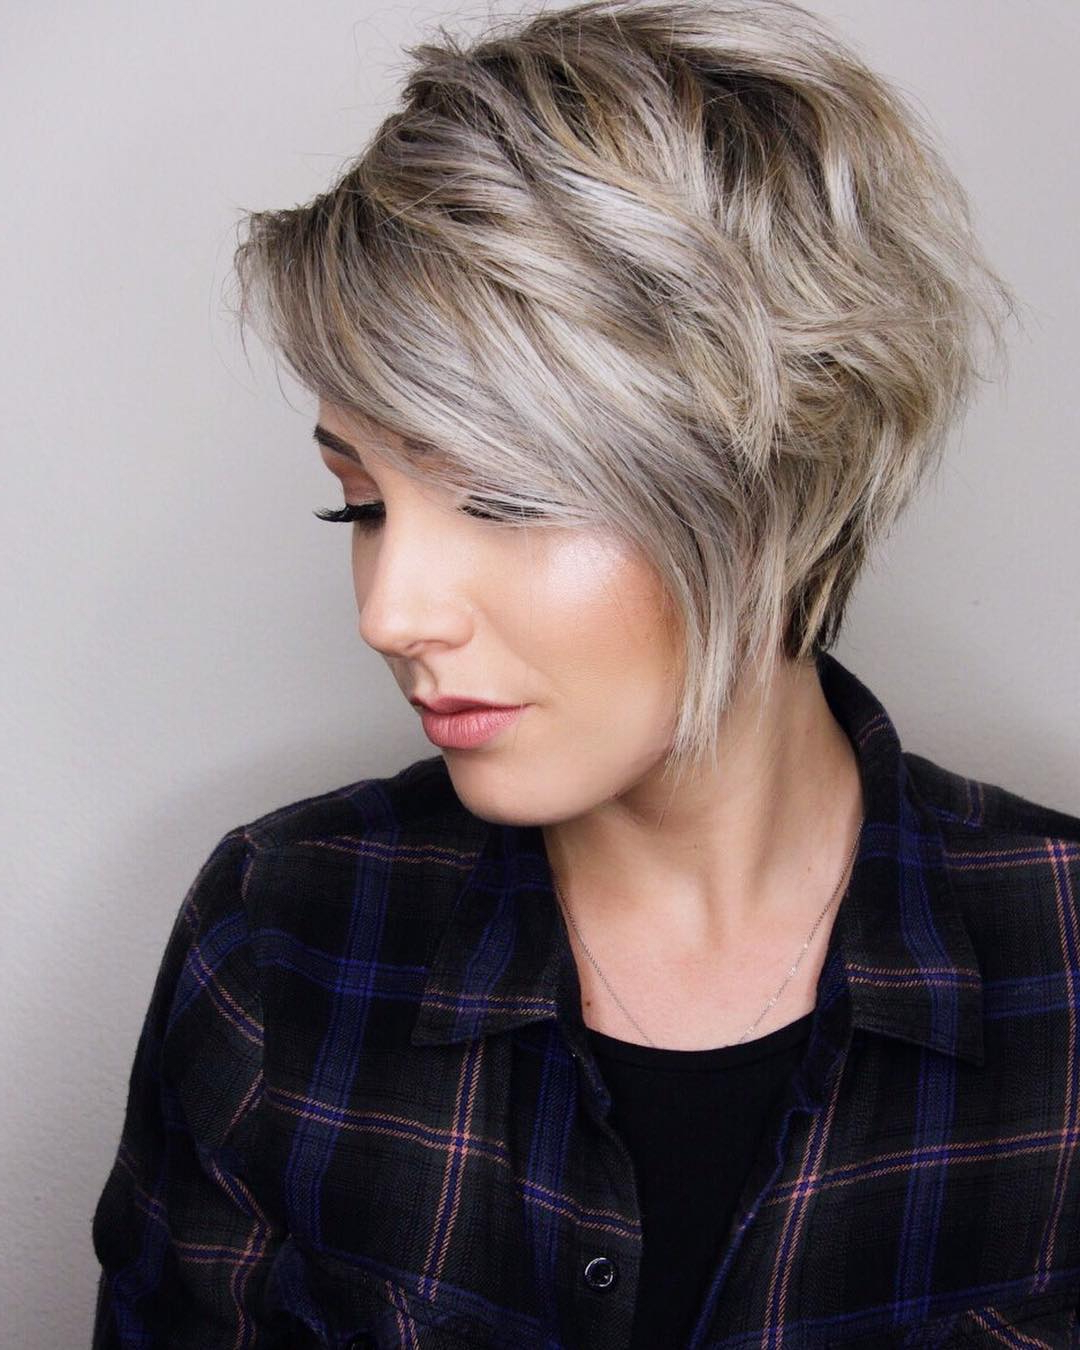 10 Trendy Layered Short Haircut Ideas 2019 – 'extra Special' Inspiration For Short Layered Hairstyles For Thick Hair (View 7 of 20)